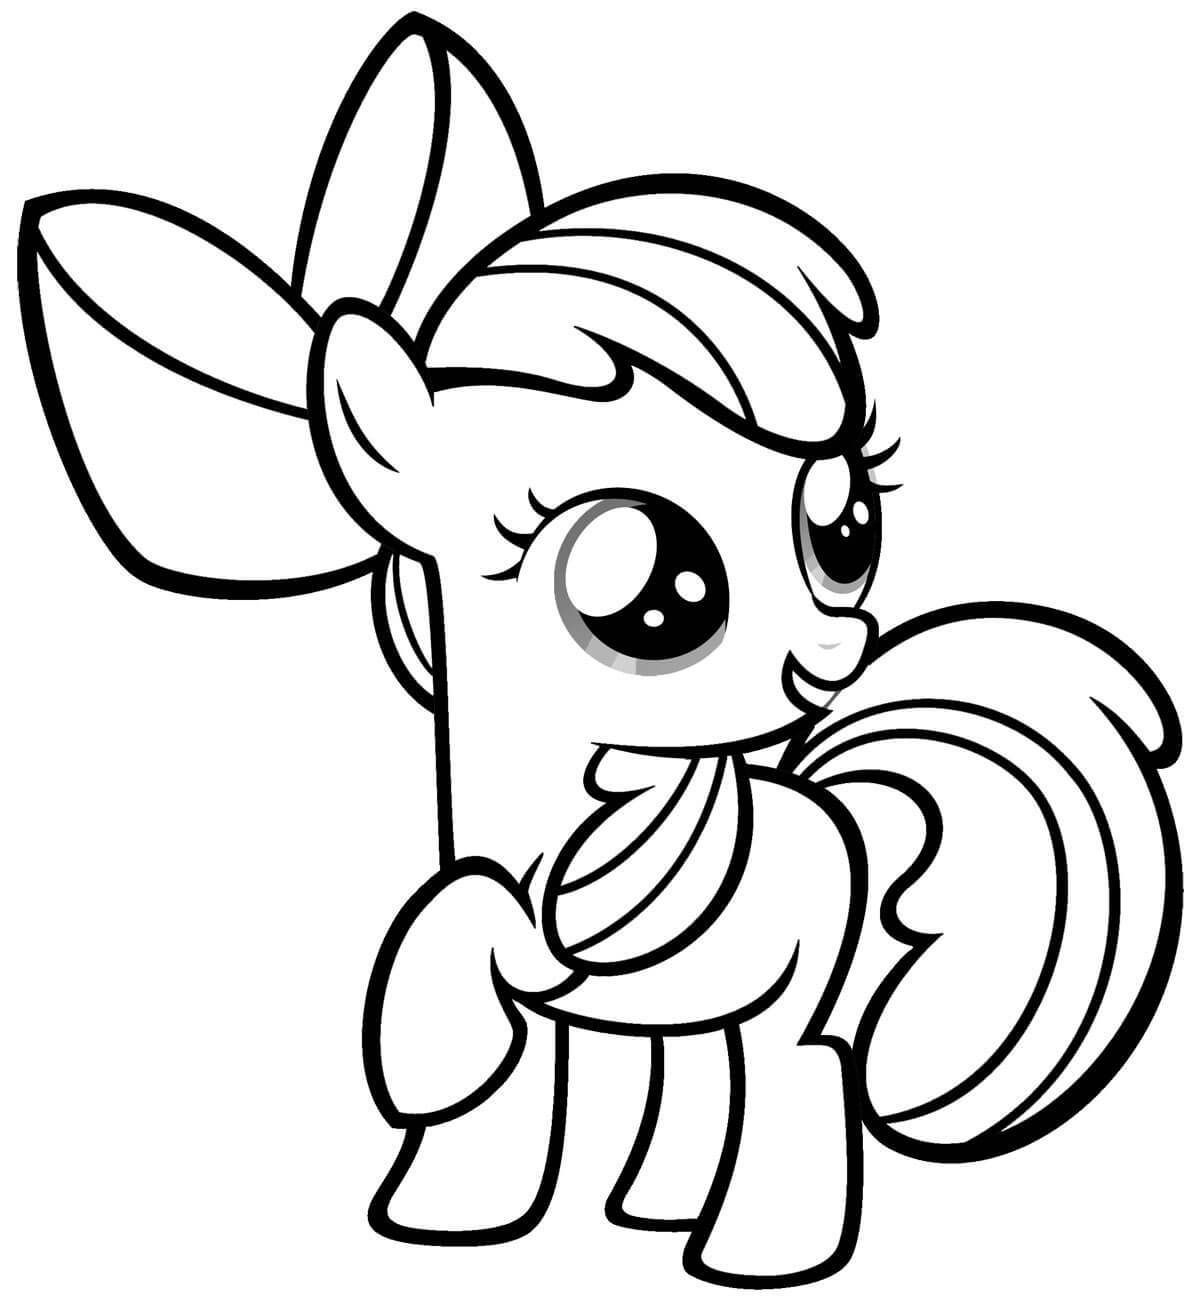 20 My Little Pony Coloring Pages Your Kid Will Love My Little Pony Coloring My Little Pony Drawing My Little Pony Characters